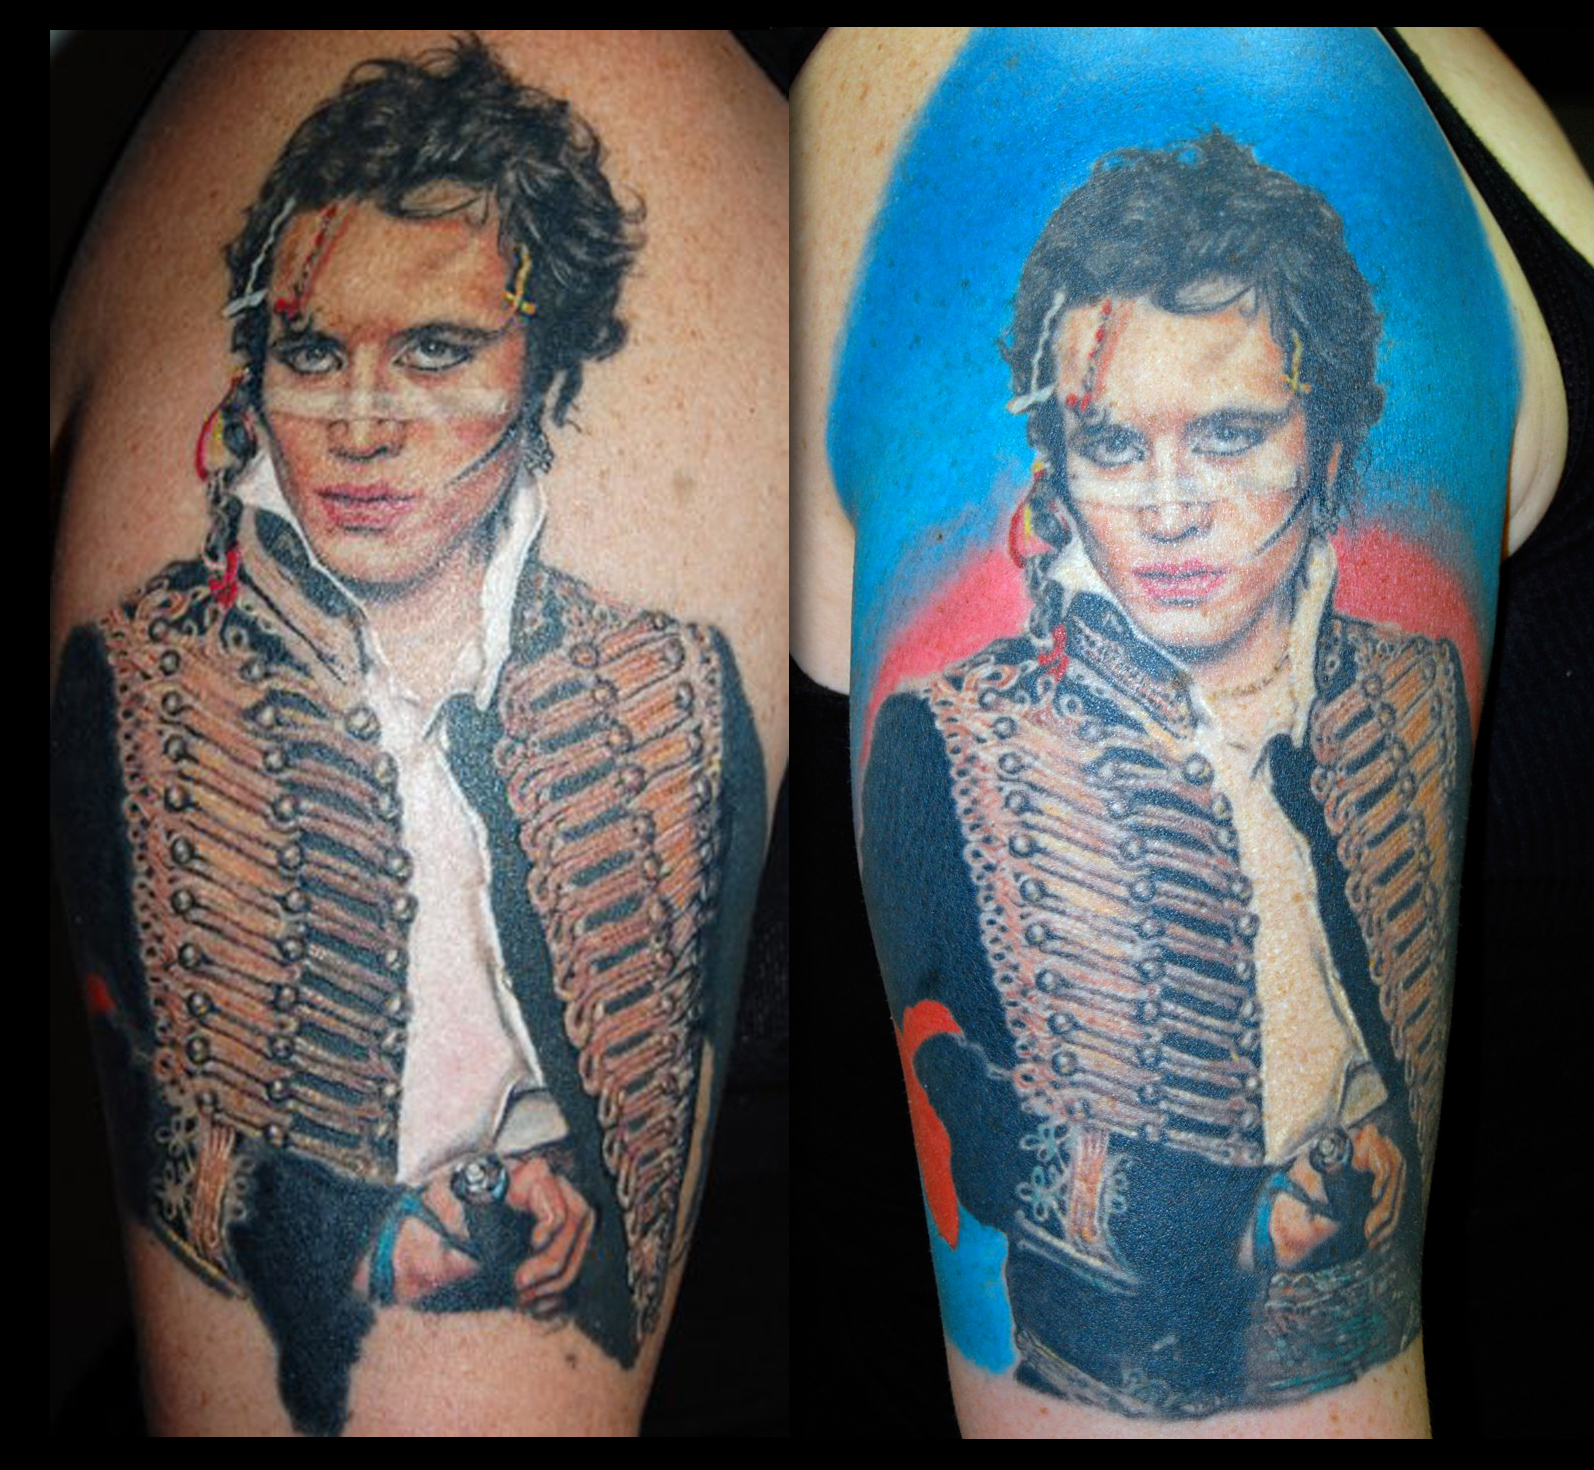 Adam Ant Color Portrait Tattoo, (tattooed mid 2000's era, healed photo)  Here is another one that I never got a good photo of.  It is from mid 2000's era when I was doing a lot of experimenting to see how far I could go tattooing realism in color.  I put a lot of work into this one, so I'll use these pics that I found posted on Facebook, (rather than uploading no pics of it at all..).  The tattoo is finished and completely healed in the photo on the right, however you can not really see the face very well with the glare, especially in the 2nd photo.  Interesting note, it was from doing this tattoo that I realized that the white stripe on his face is actually medical tape, not make up. Smart move if you want it to stay on while sweating and performing!